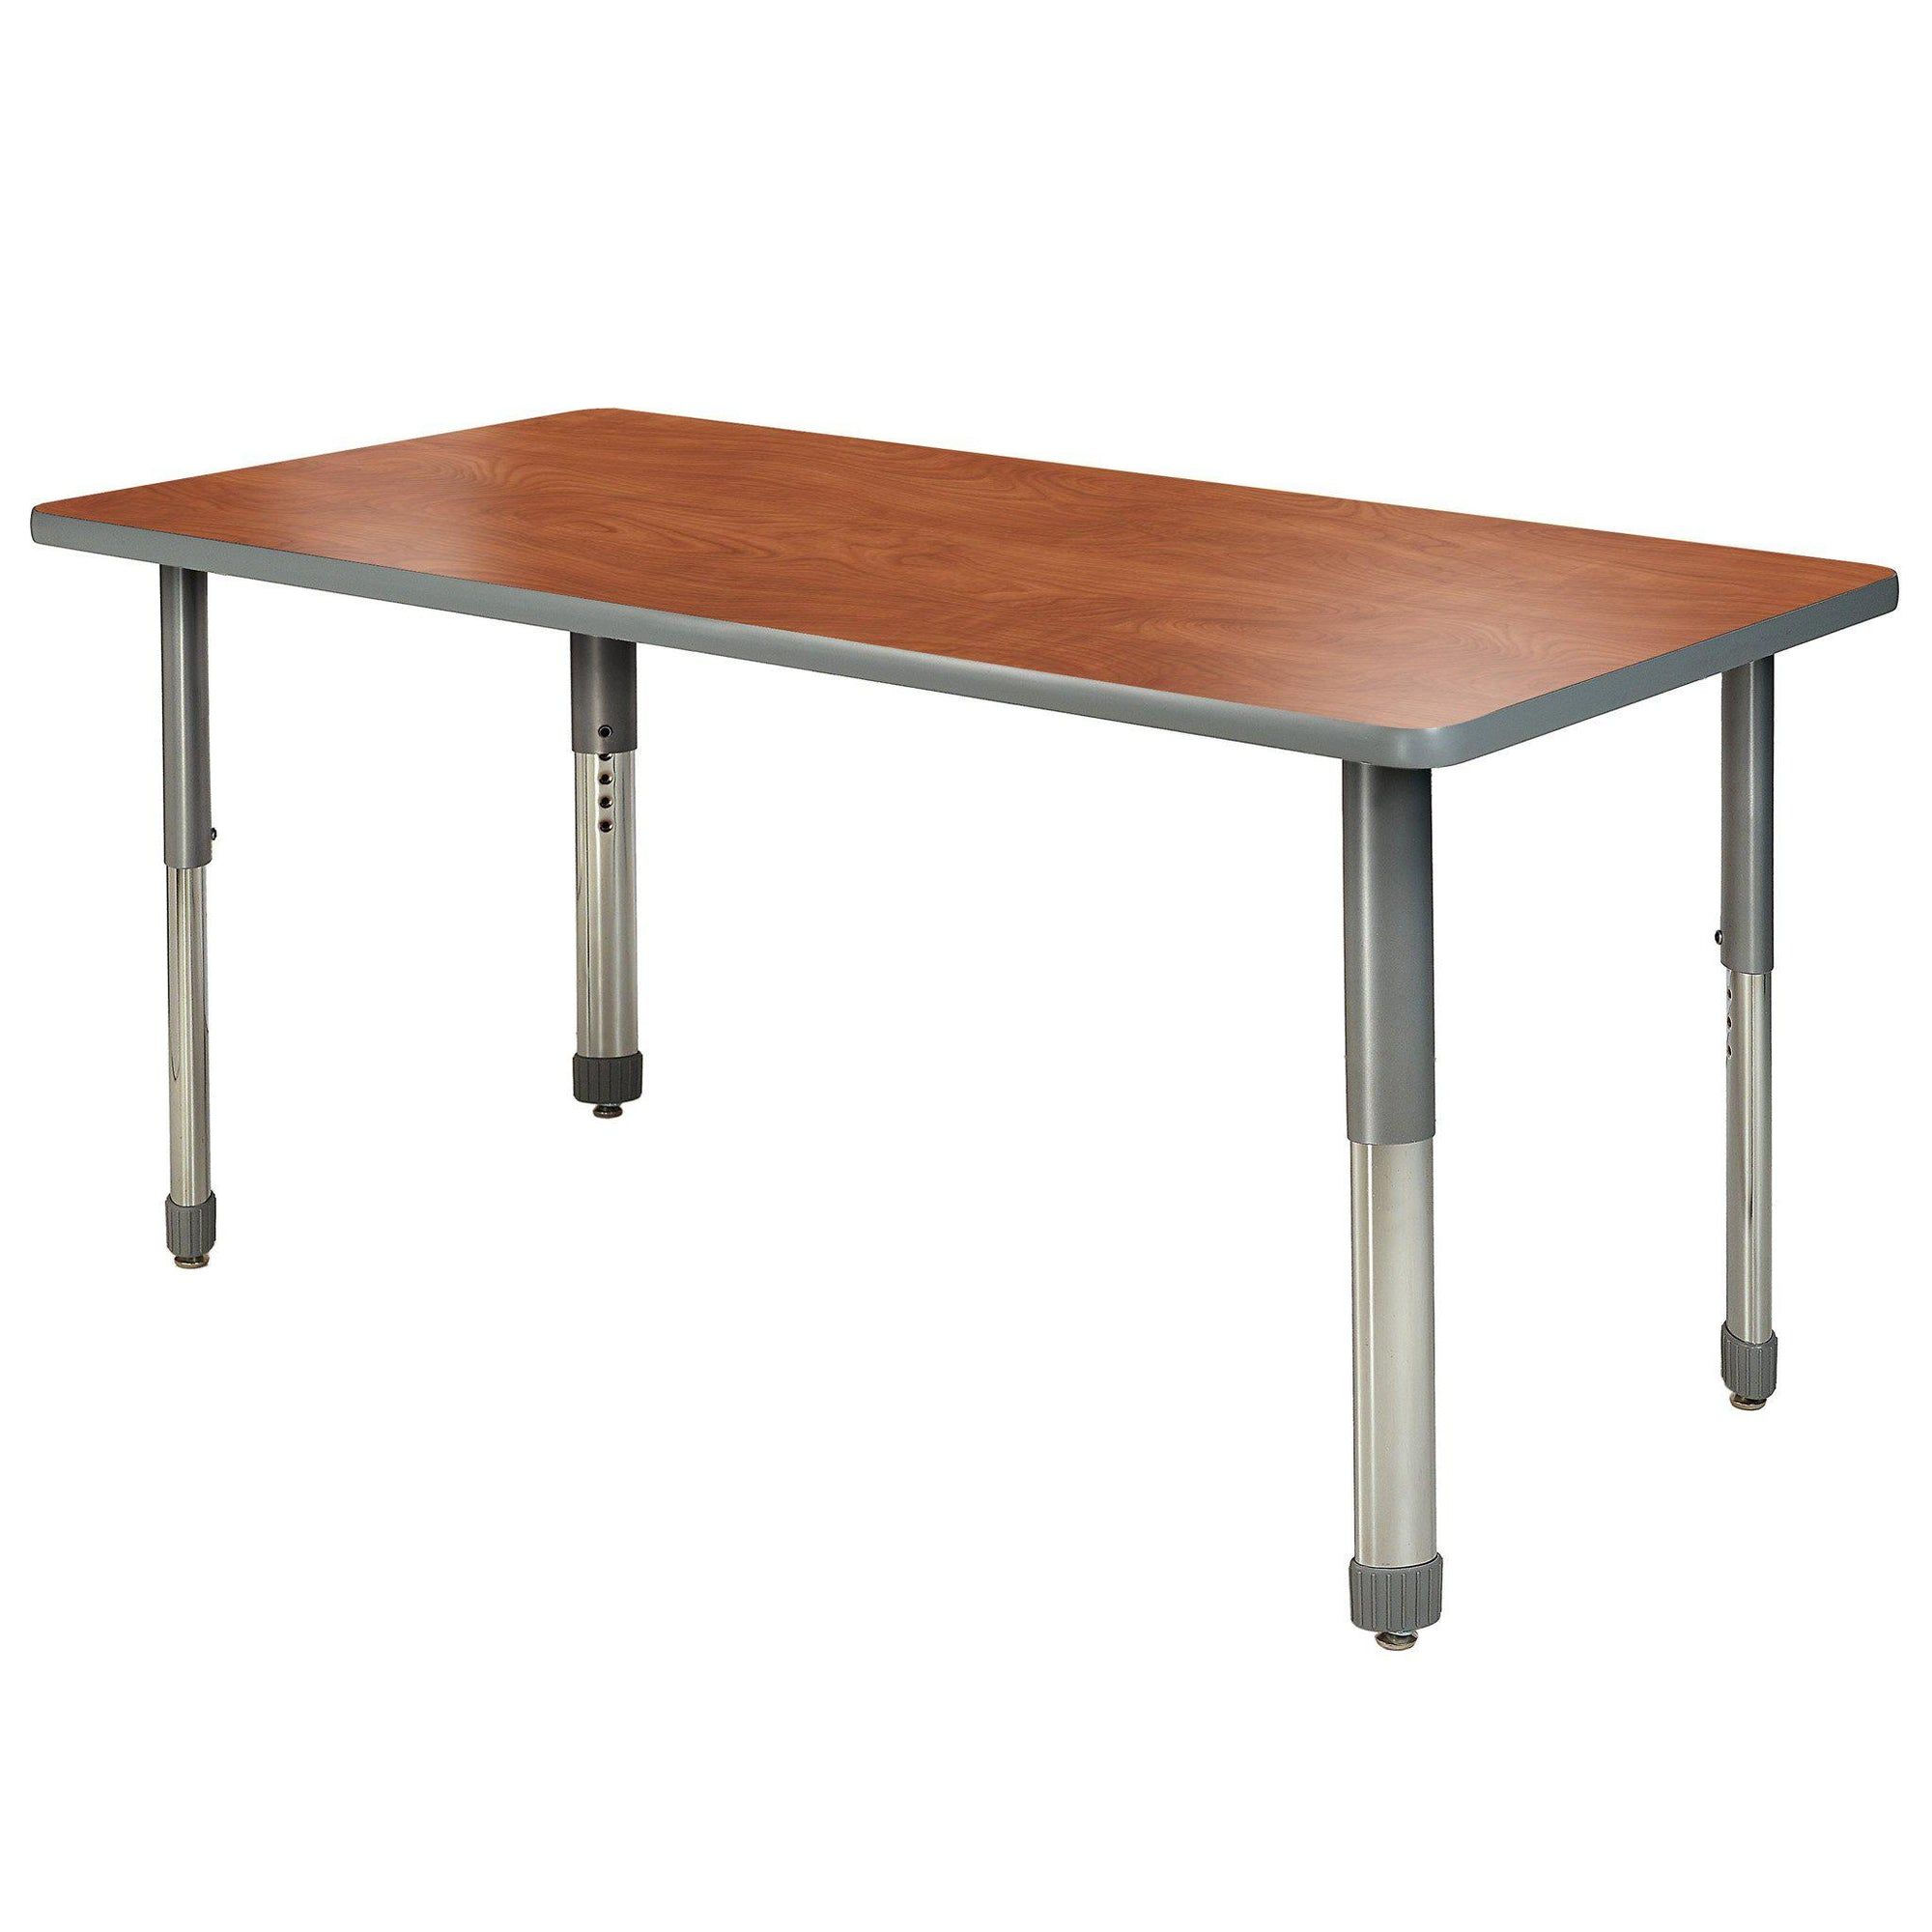 "Aero Activity Table, 42"" x 60"" Rectangle, Oval Adjustable Height Legs"